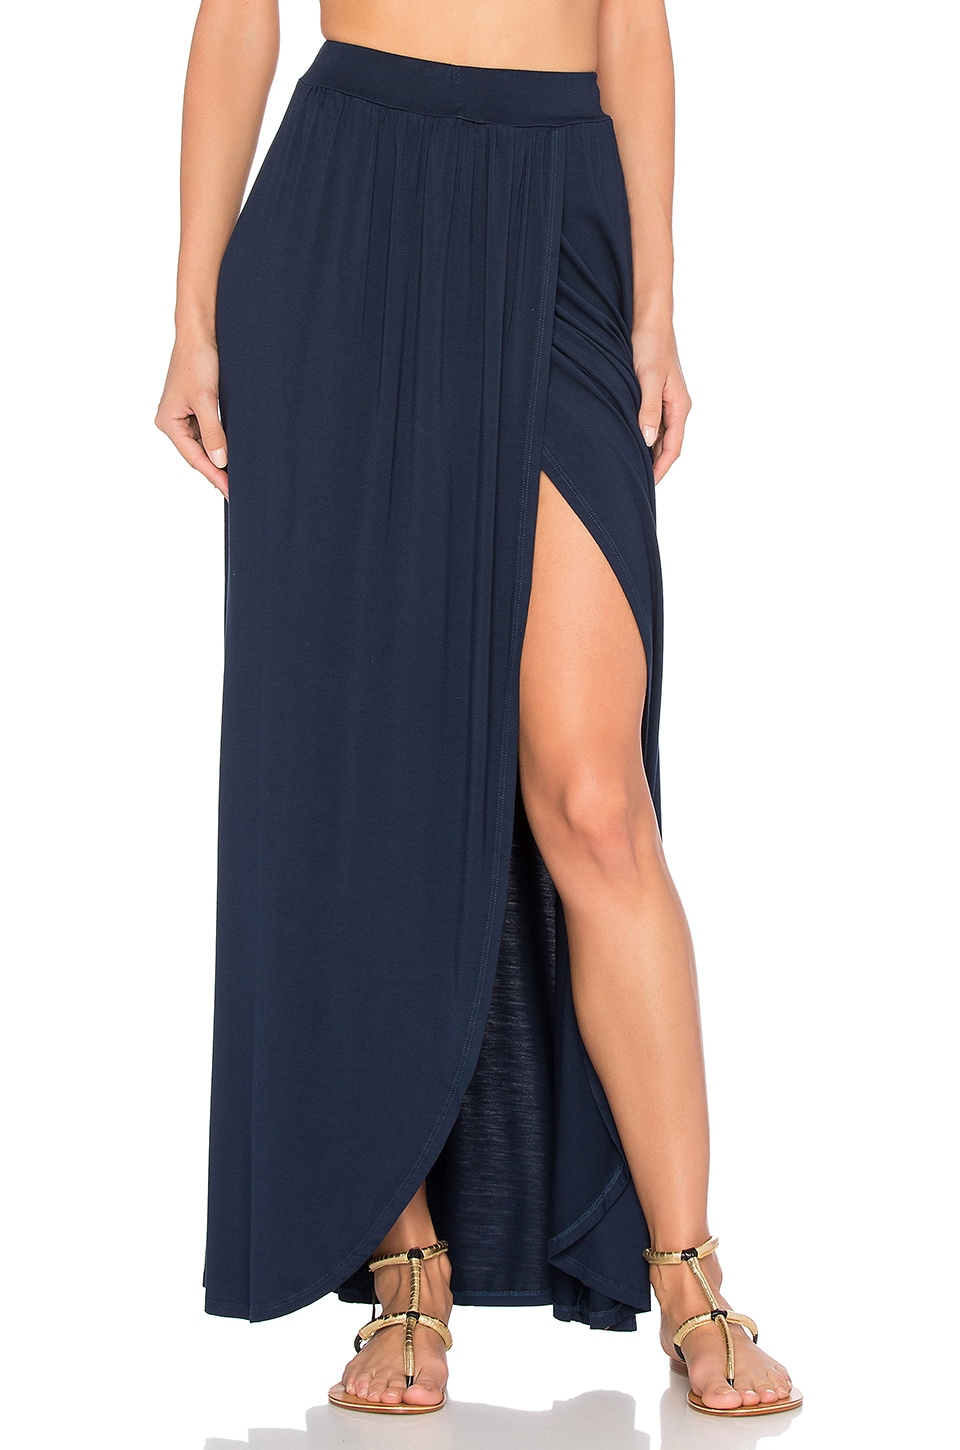 Michael Lauren Indy Wrap Maxi Skirt in Navy Storm